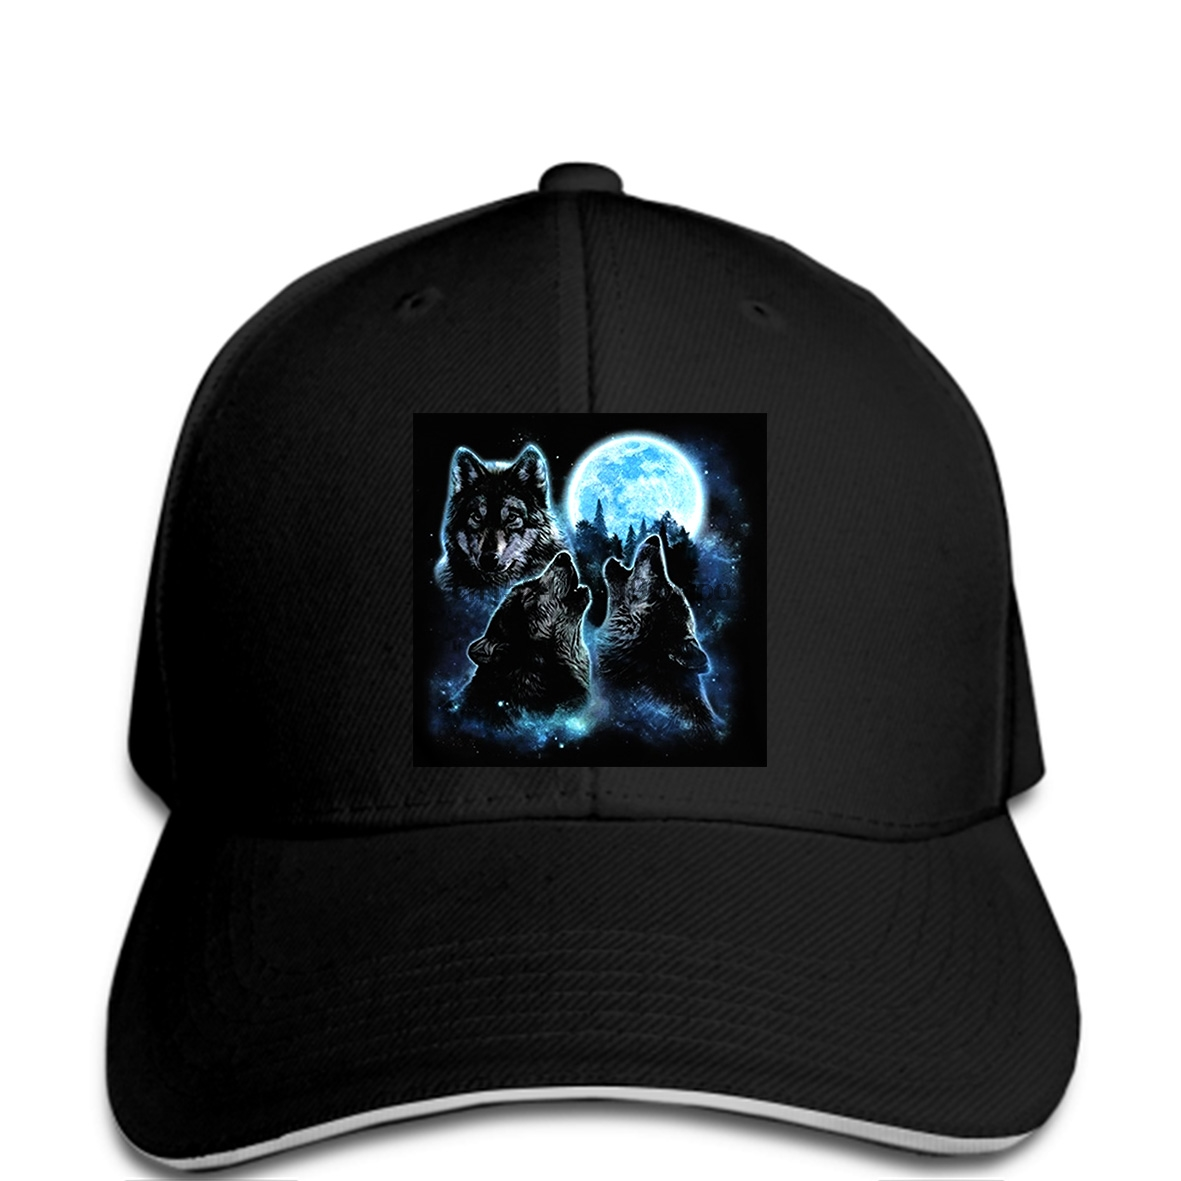 Howling Wolf Moon Adult Personalize Jeans Sun Hat Adjustable Baseball Cap